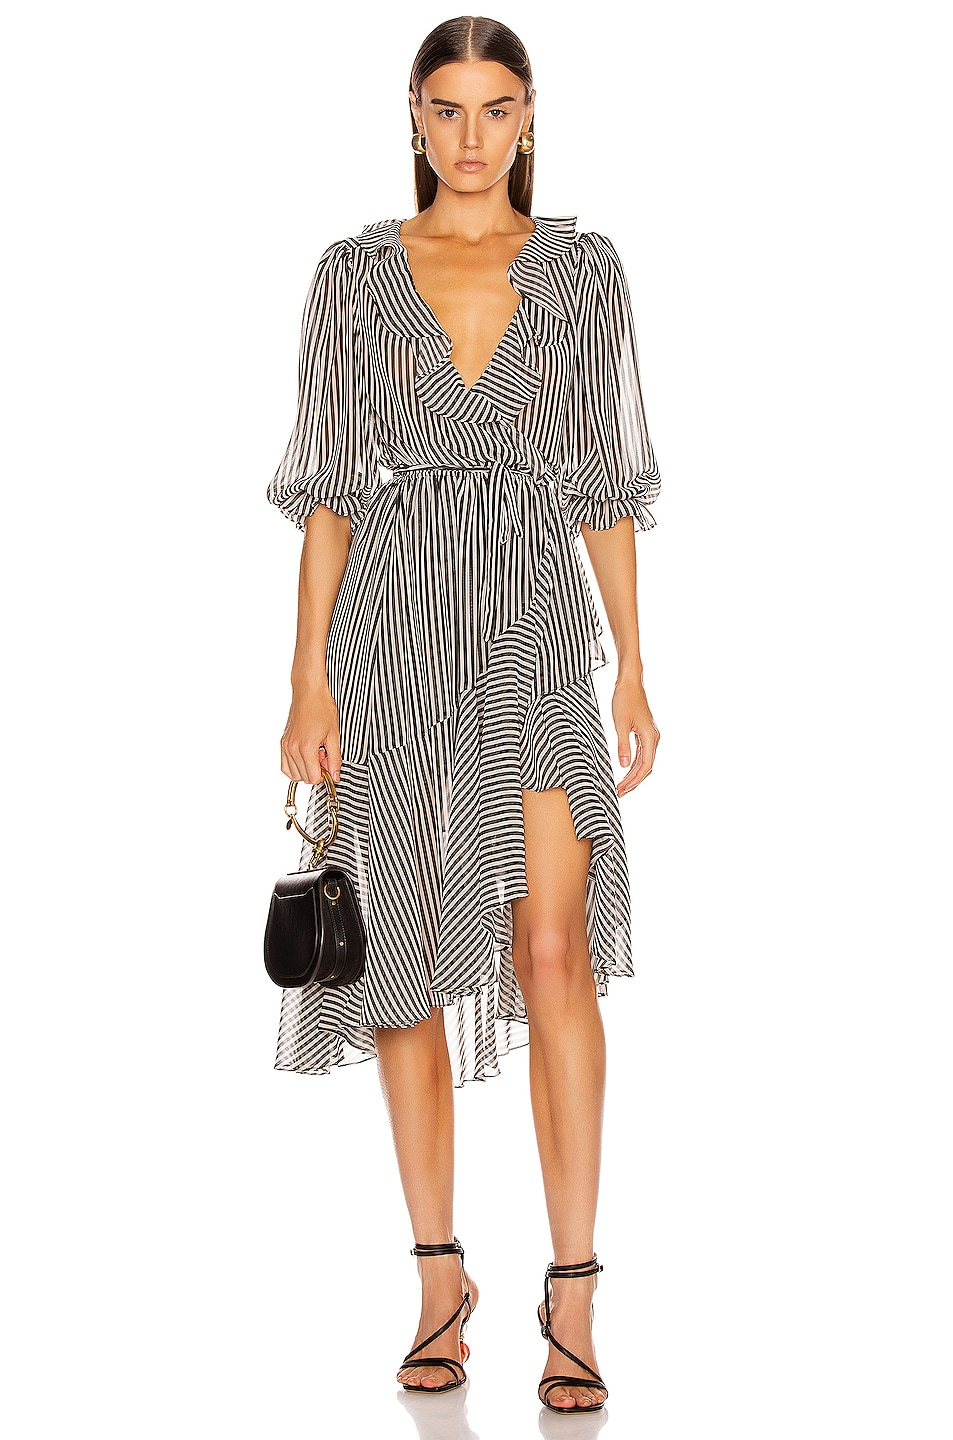 Image 1 of ICONS Objects of Devotion The Cha Cha Dress in Black & White Stripe